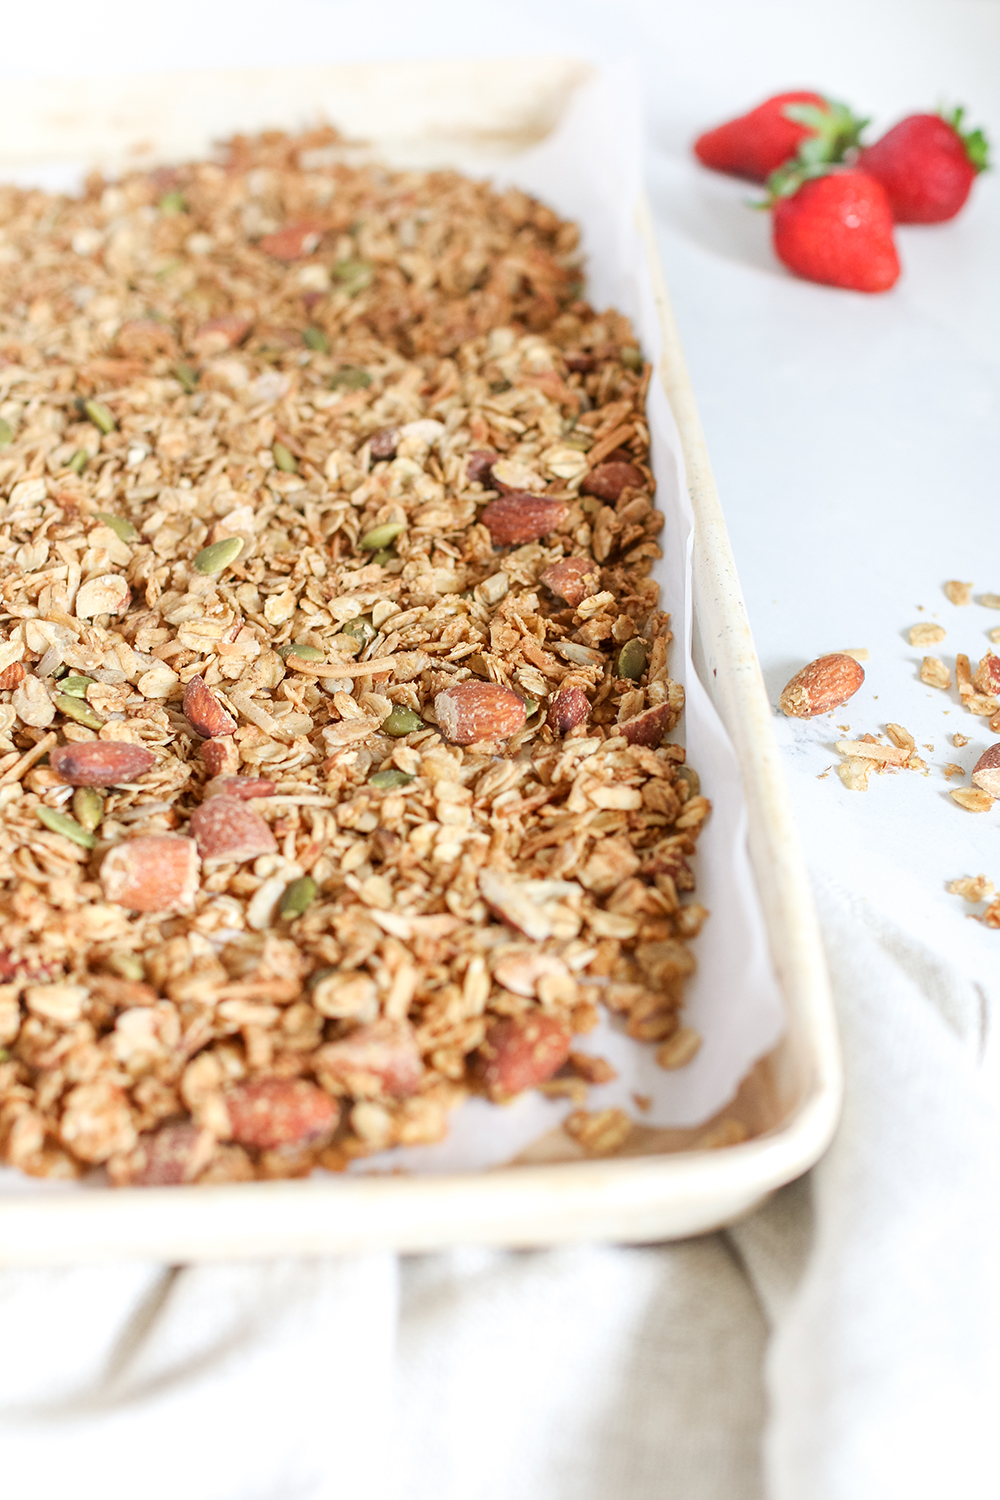 homemade granola in a white tray with strawberries next to it